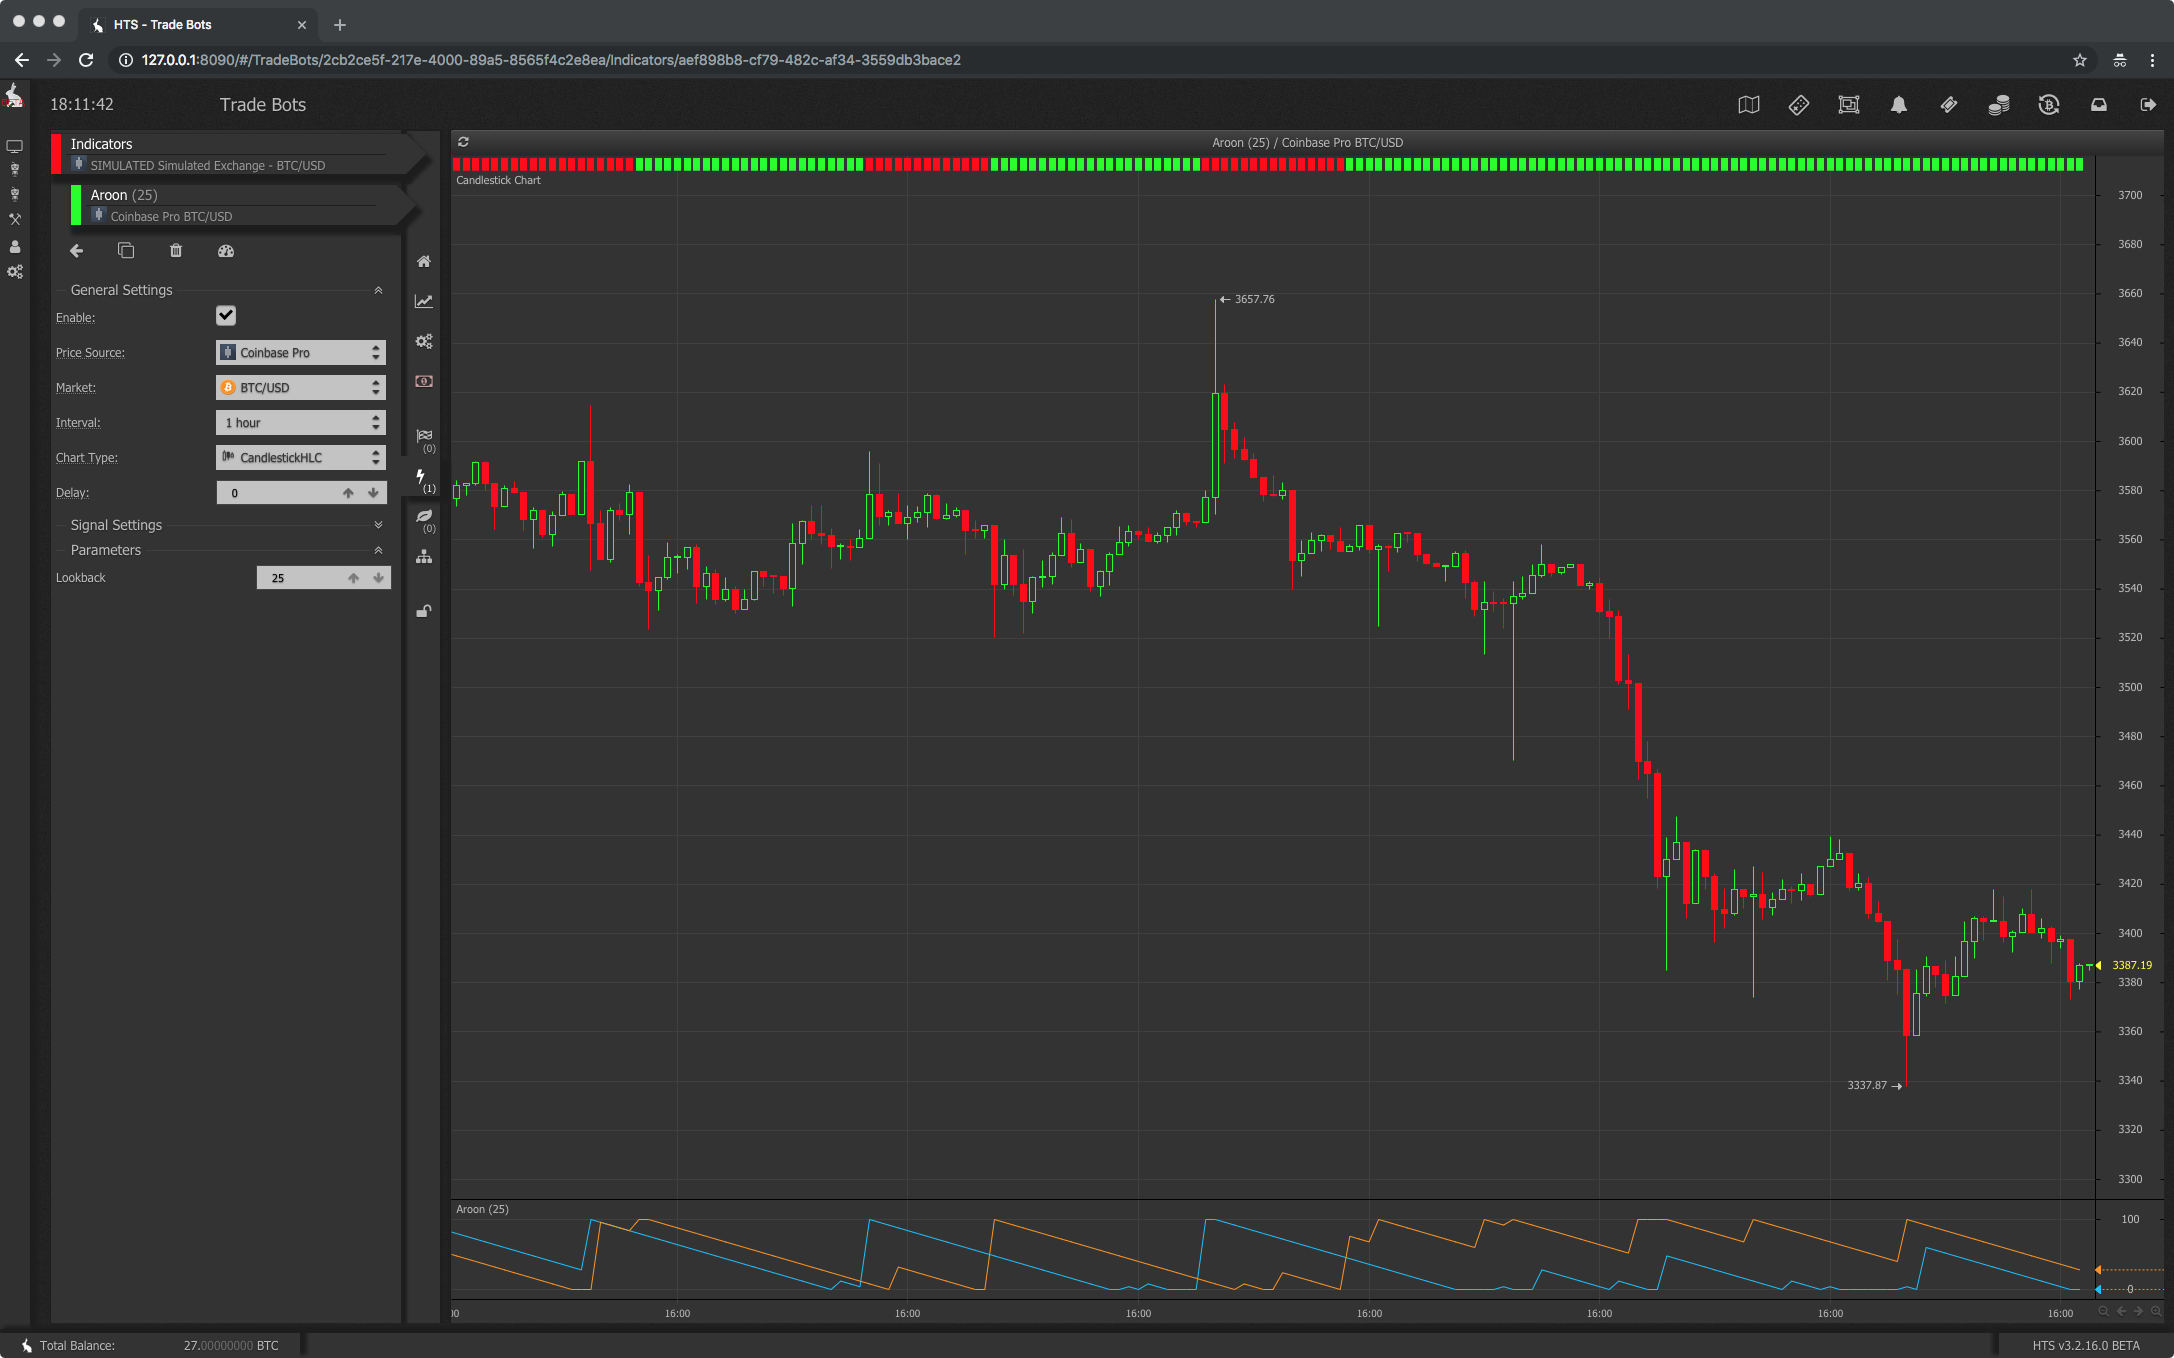 Aroon trade bot technical indicator